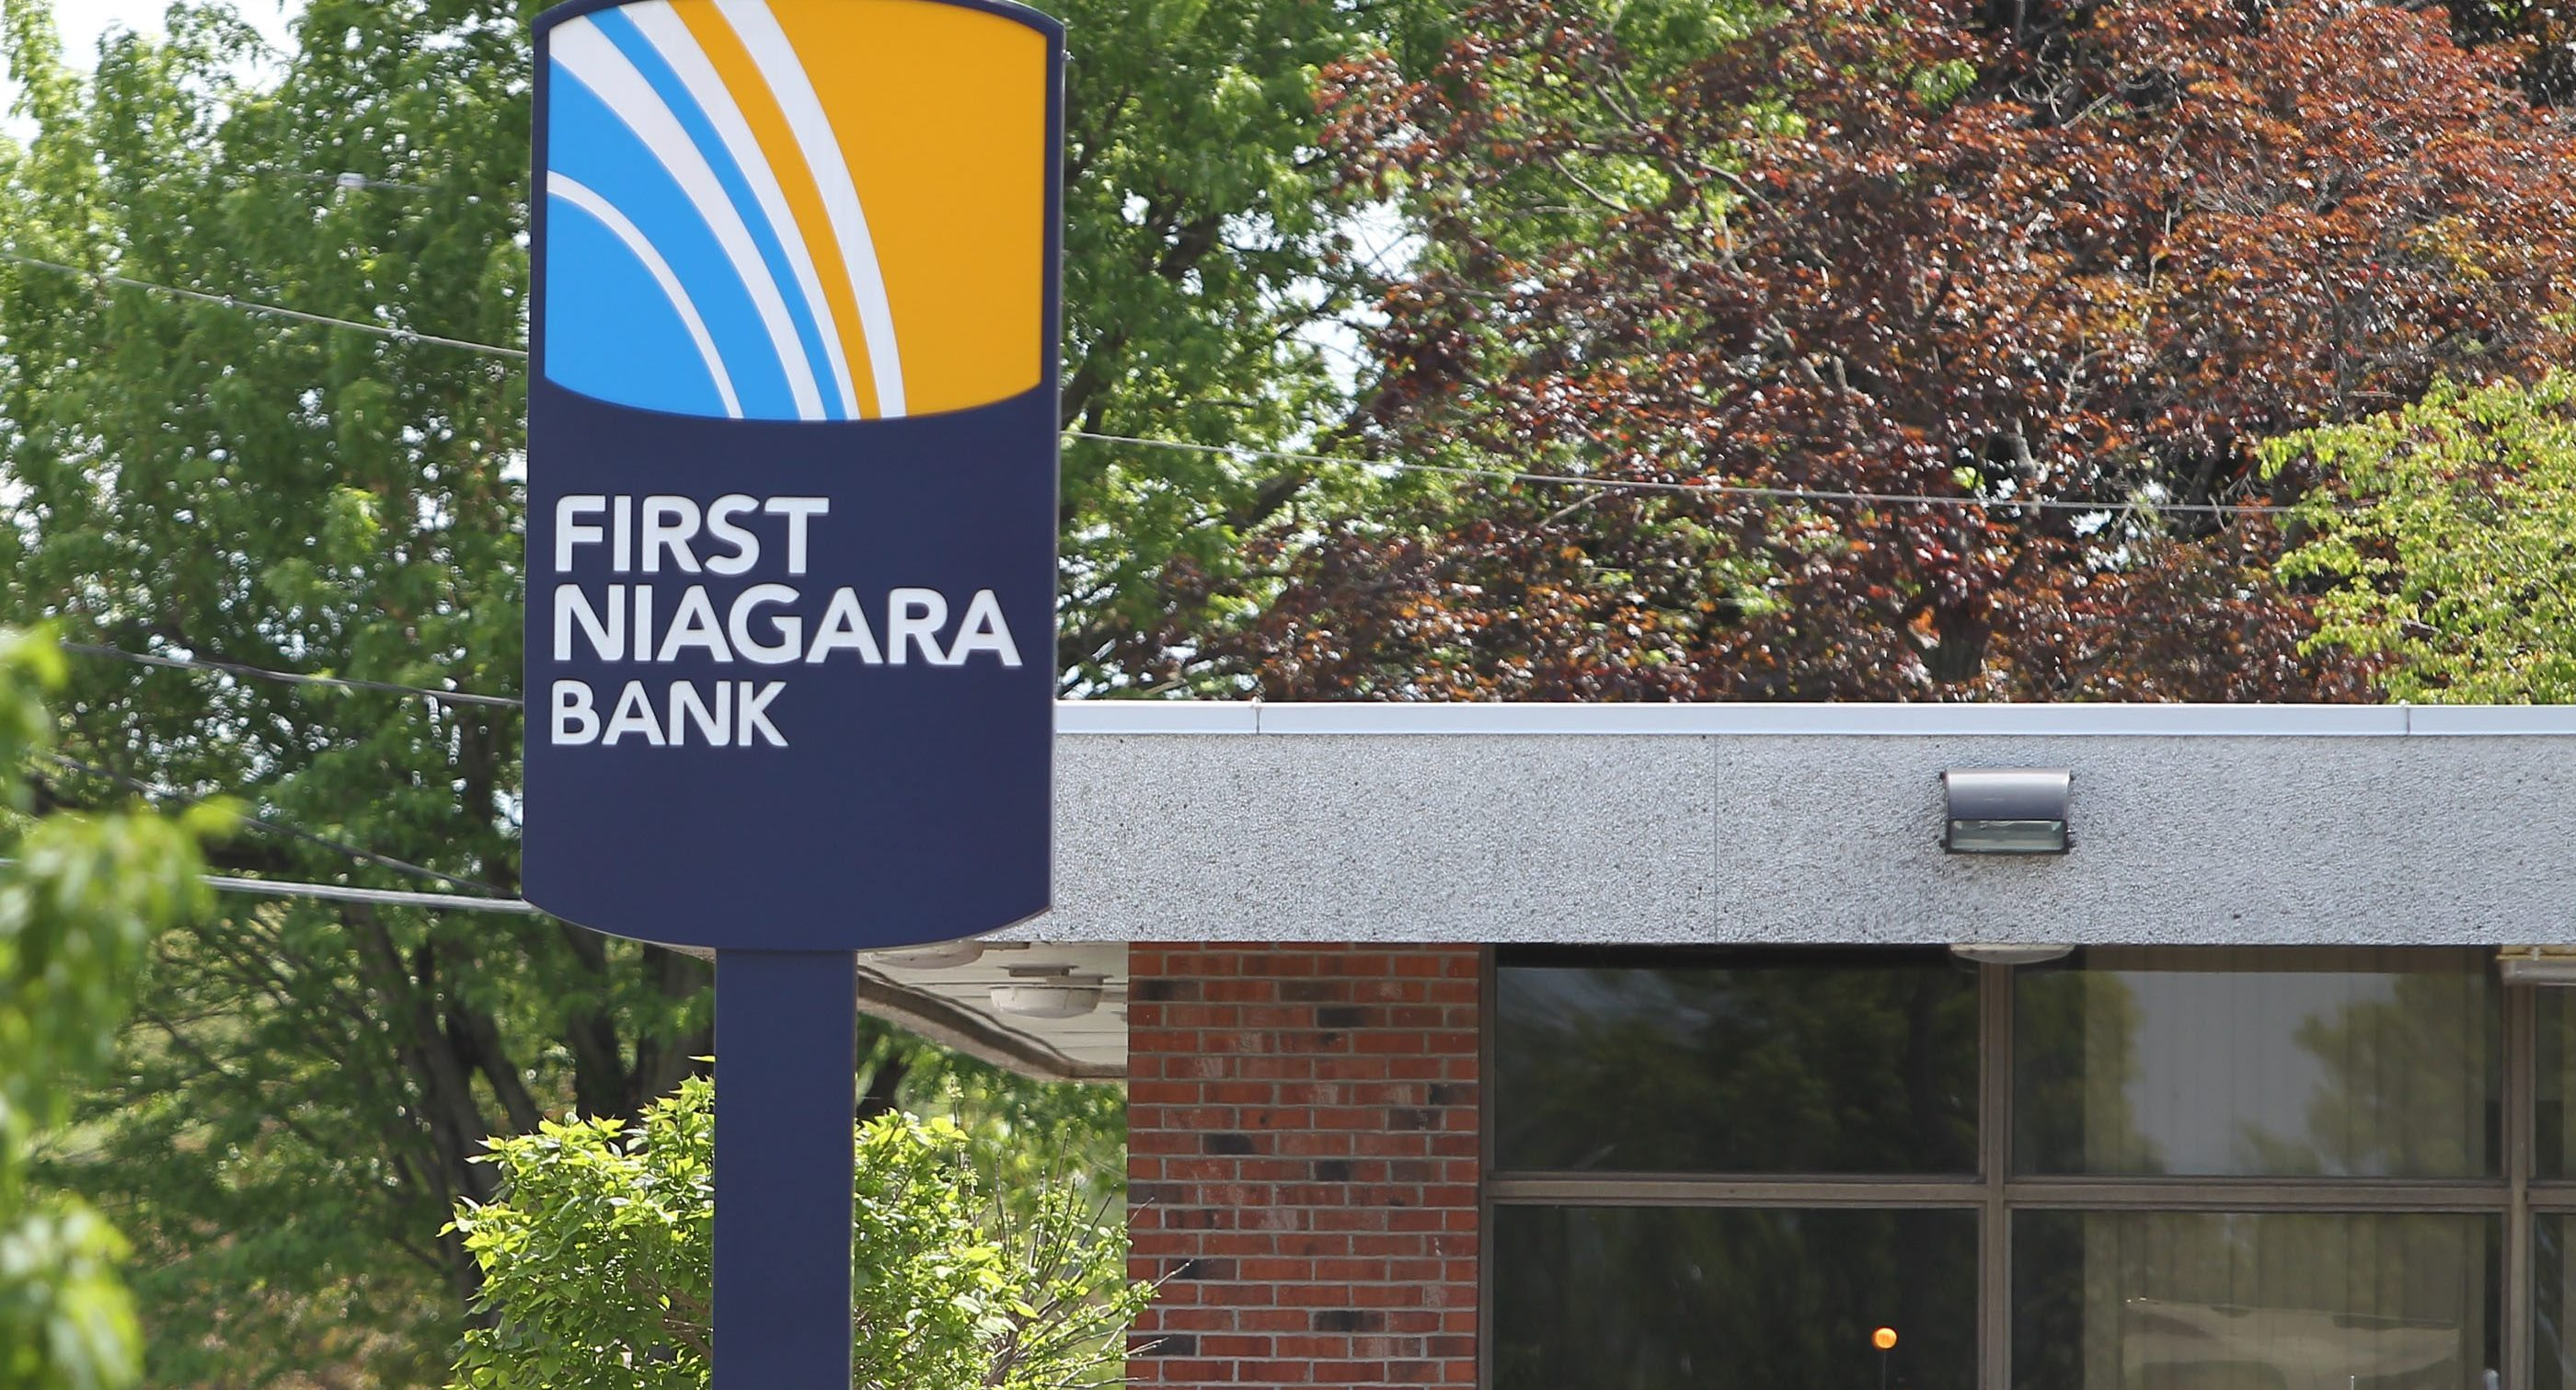 Pending sale of First Niagara Bank was the top financial story of 2015. (Buffalo News file photo)